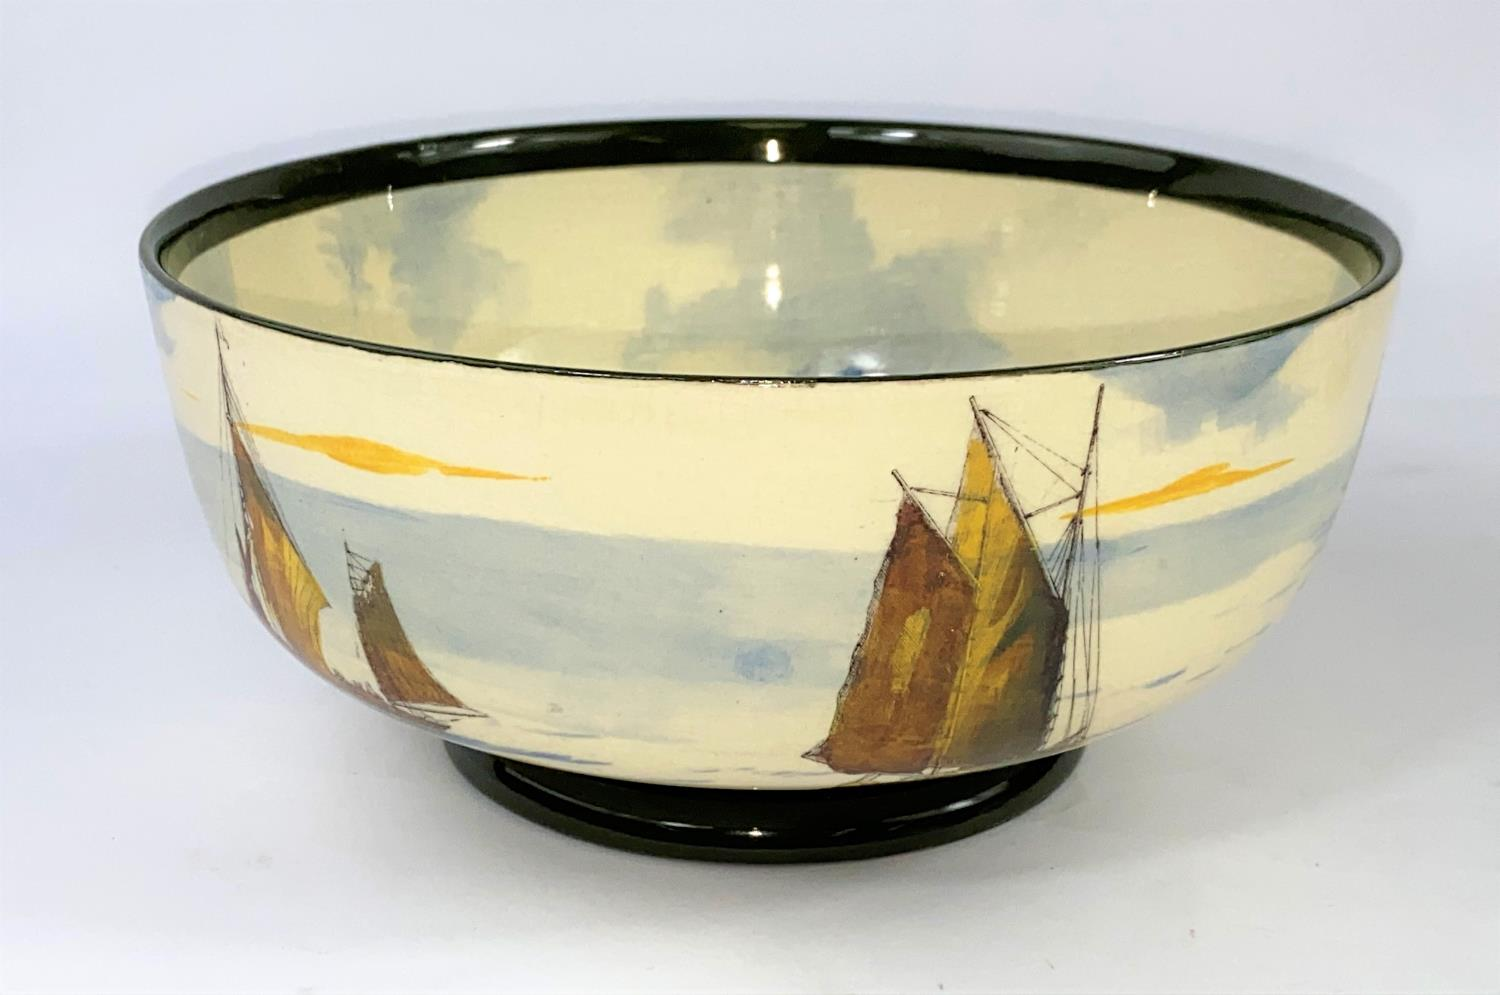 A Royal Doulton - decorated with sailing boats to the interior and exterior